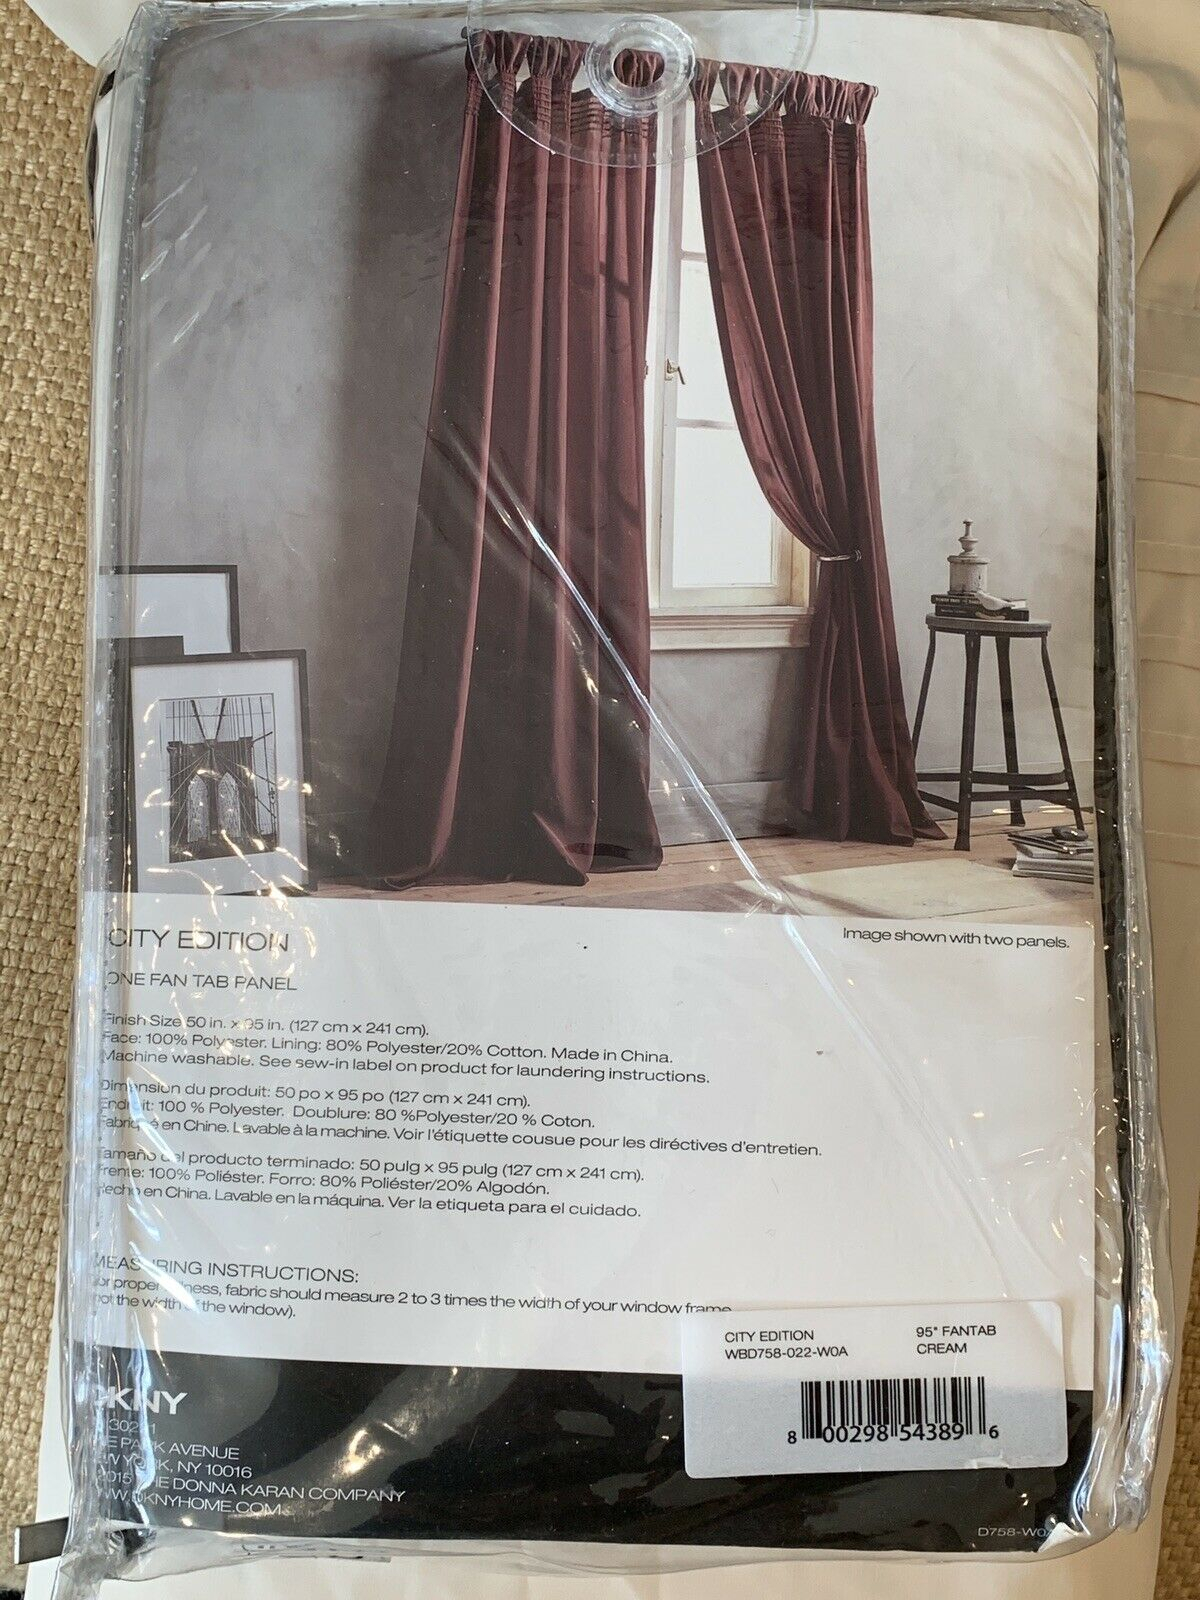 "3 New Dkny City Edition Cream Window Curtain Tab Top Pleated Panels 50 X 95"" Intended For Vue Elements Priya Tab Top Window Curtains (View 20 of 30)"